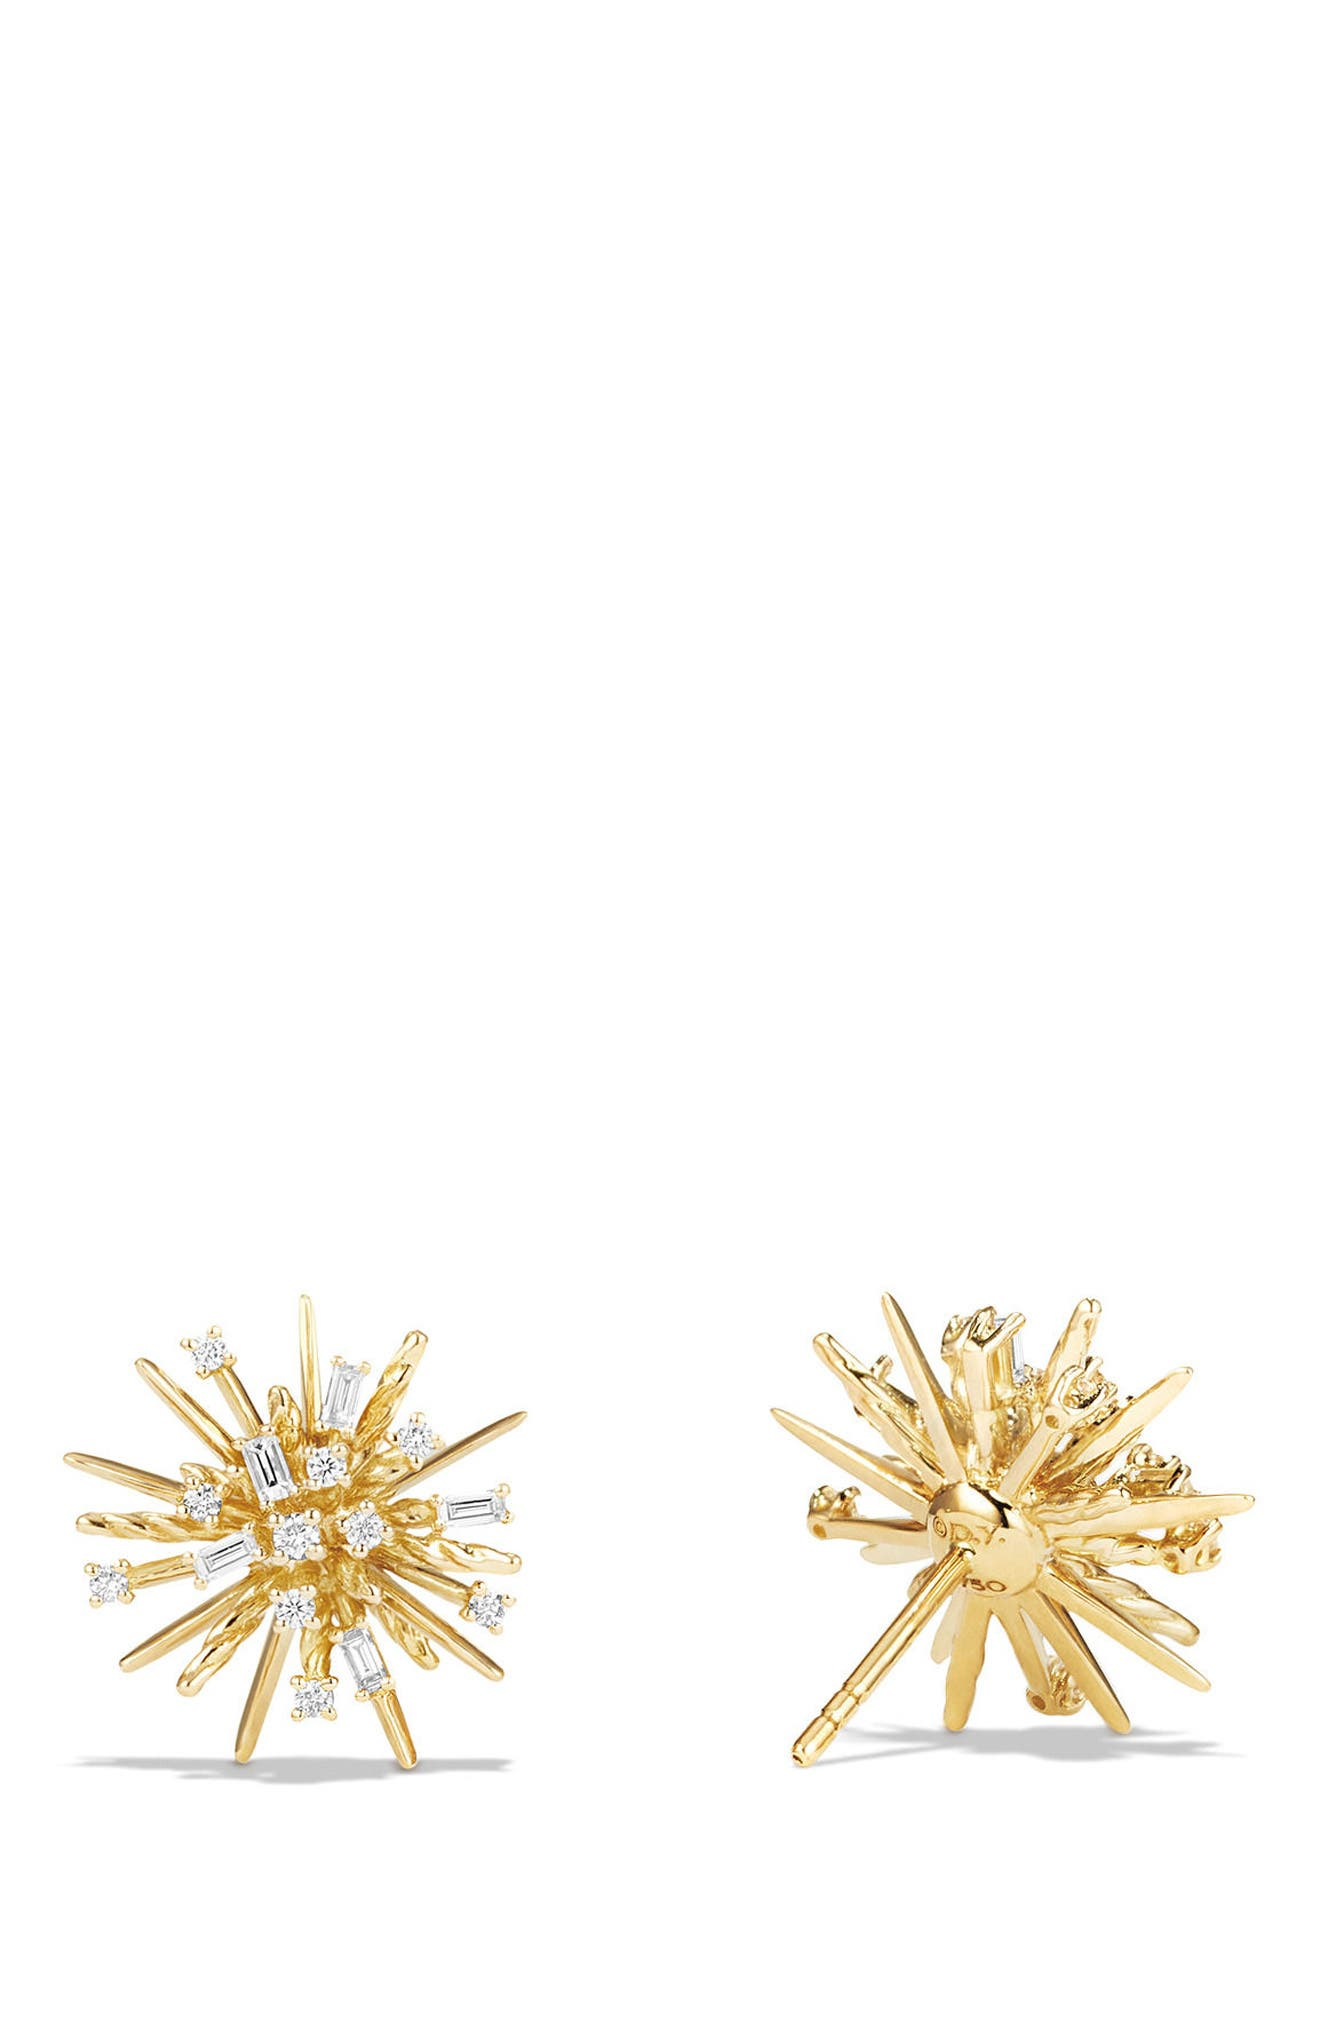 Supernova Stud Earrings with Diamonds in 18K Gold,                             Alternate thumbnail 3, color,                             YELLOW GOLD